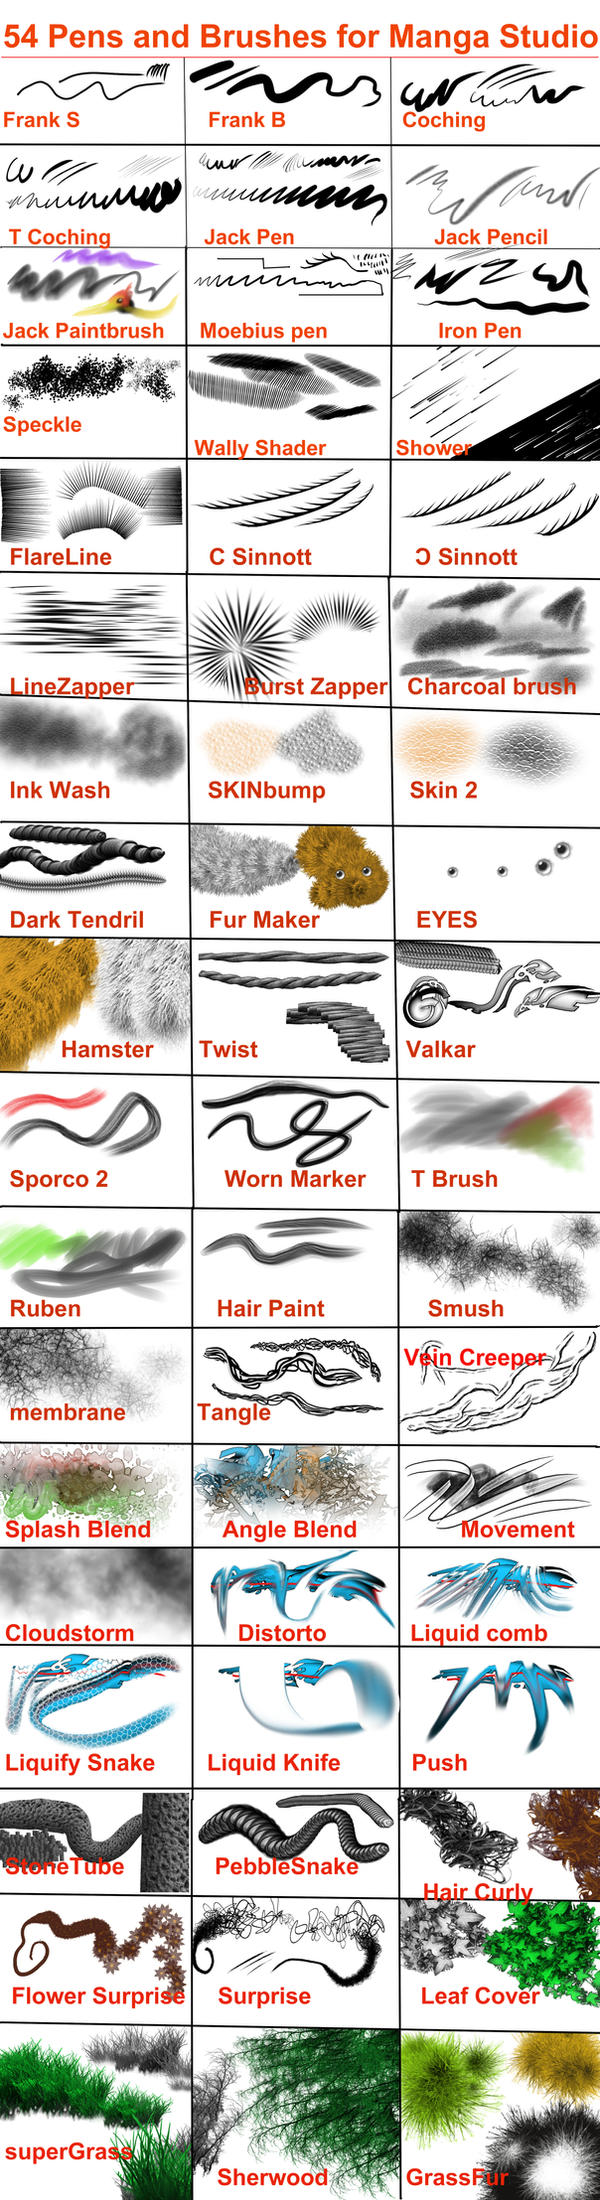 Manga Studio downloadable brushes collection 3 by 888toto